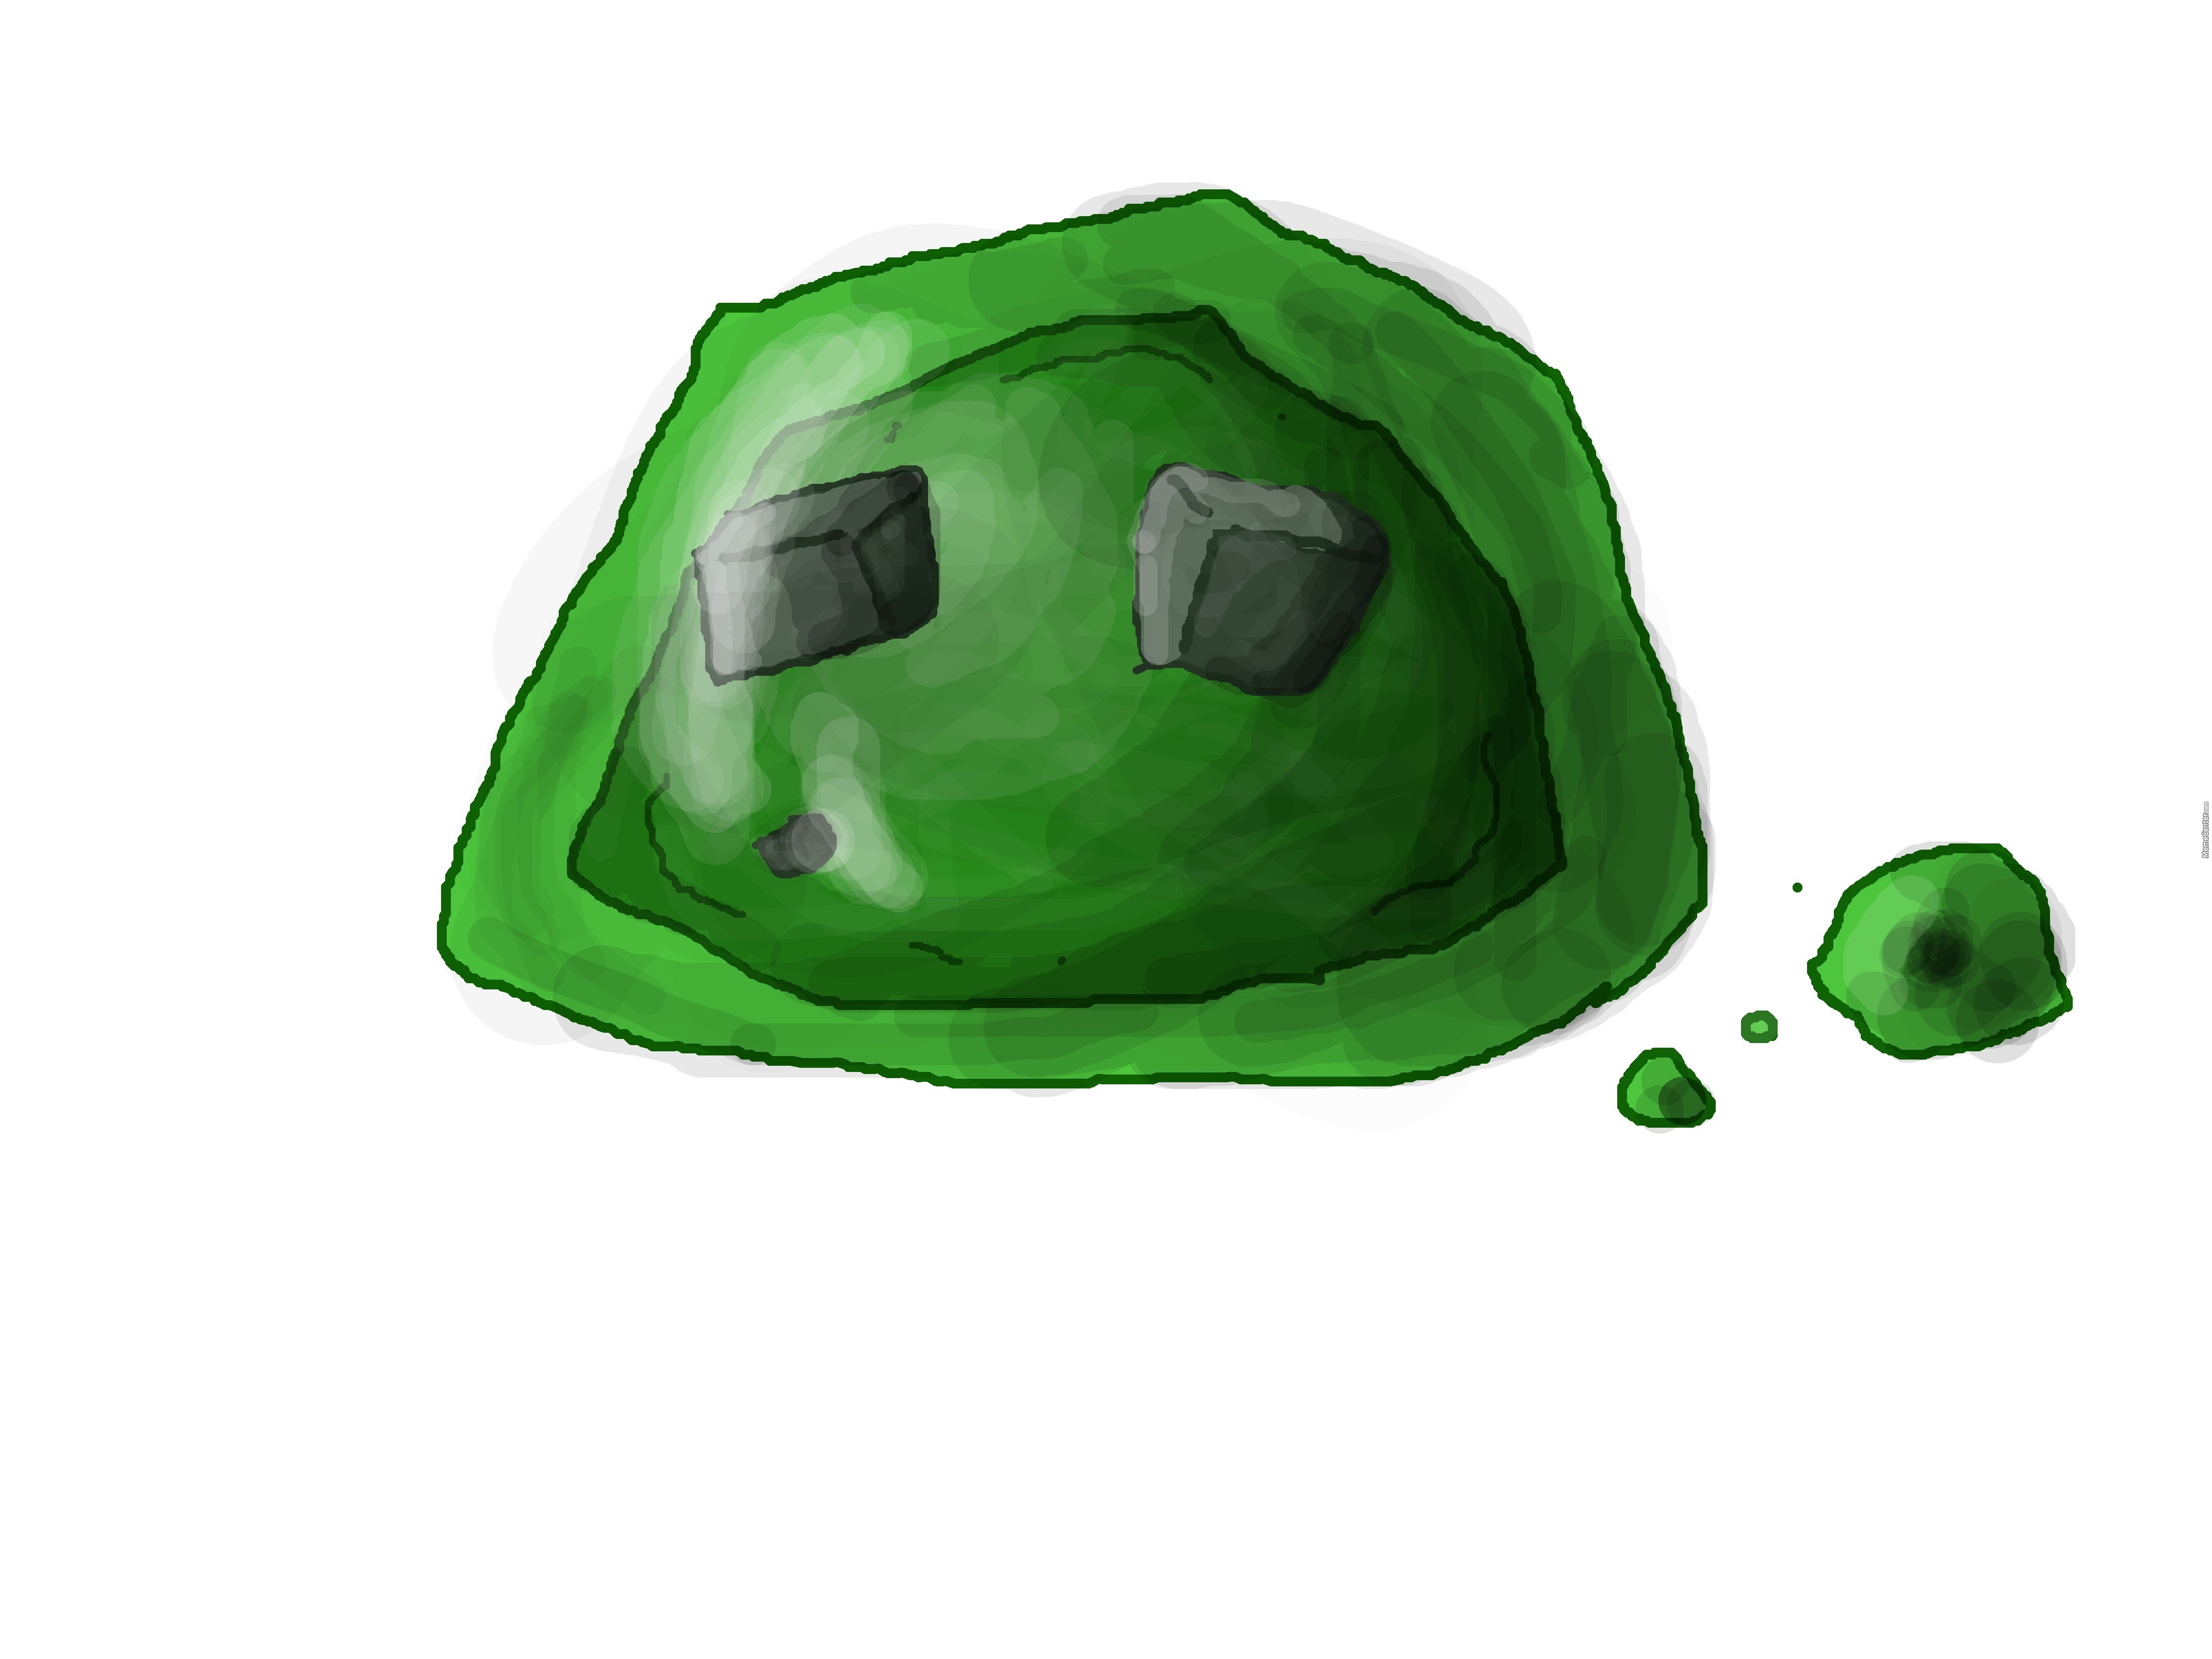 Pleasing Minecraft Slime Fan Art By Hauntedboy Meme Center Ocoug Best Dining Table And Chair Ideas Images Ocougorg